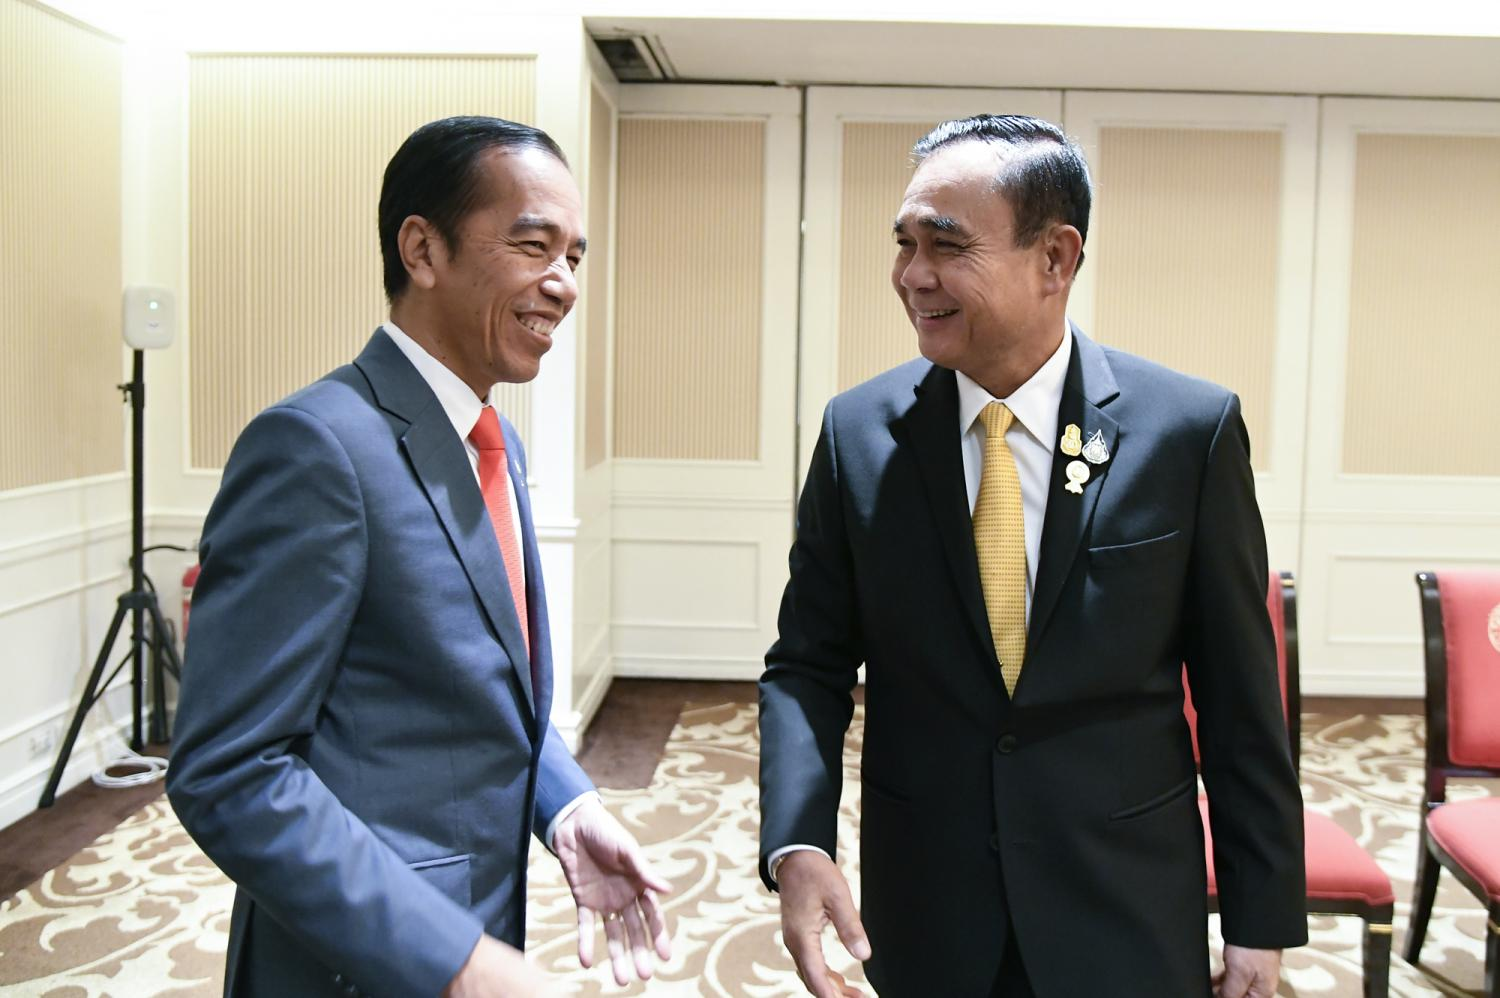 Prime Minister Prayut Chan-o-cha at Indonesian President Joko Widodo, left, during a bilateral meeting to strengthen bilateral cooperation and promote trade and investment between the two countries.